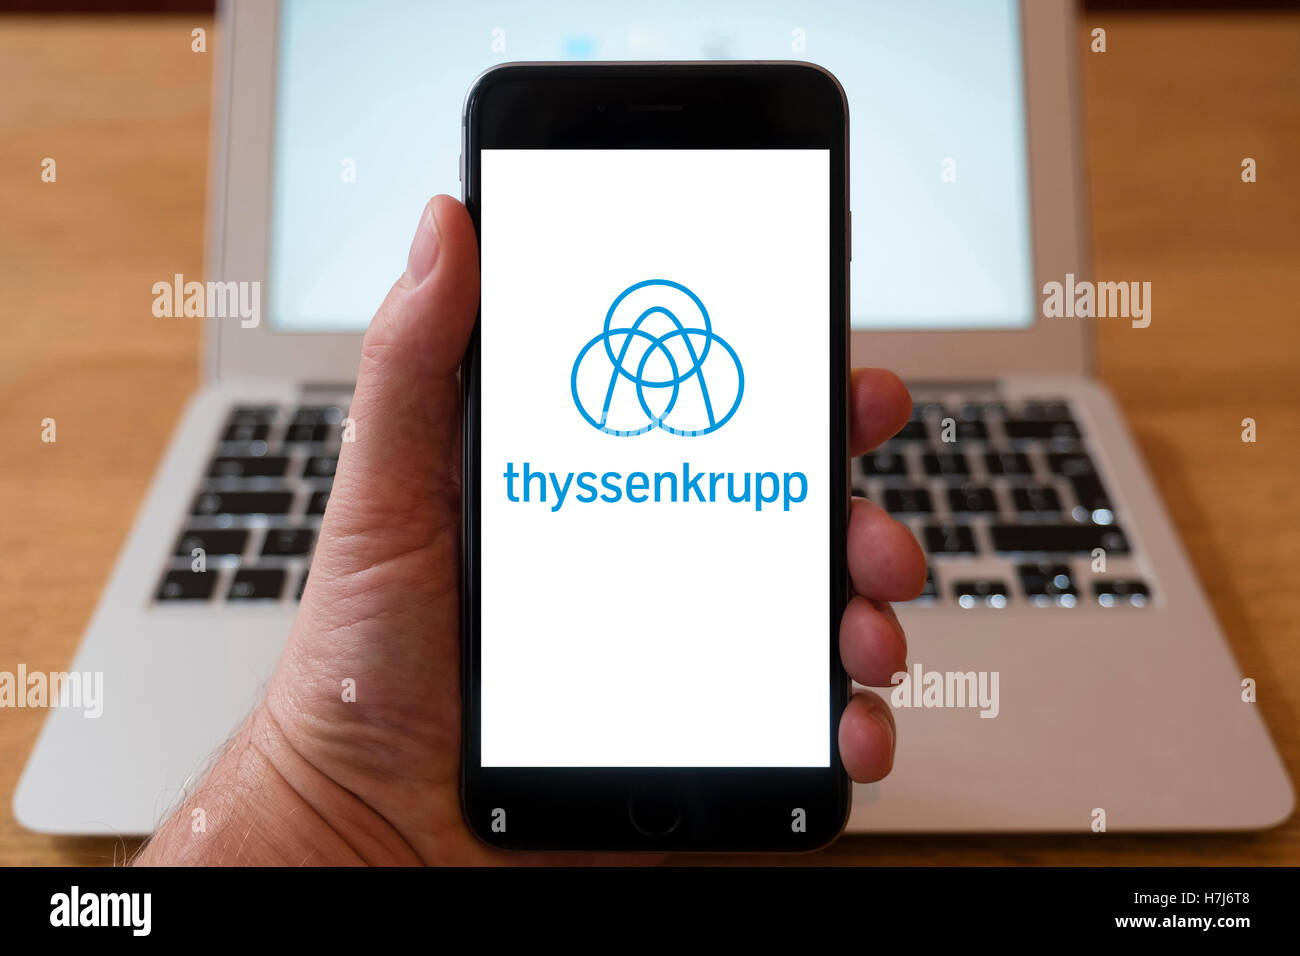 Using iPhone smart phone to display logo of Thyssenkrupp industrial multinational conglomerate - Stock Image